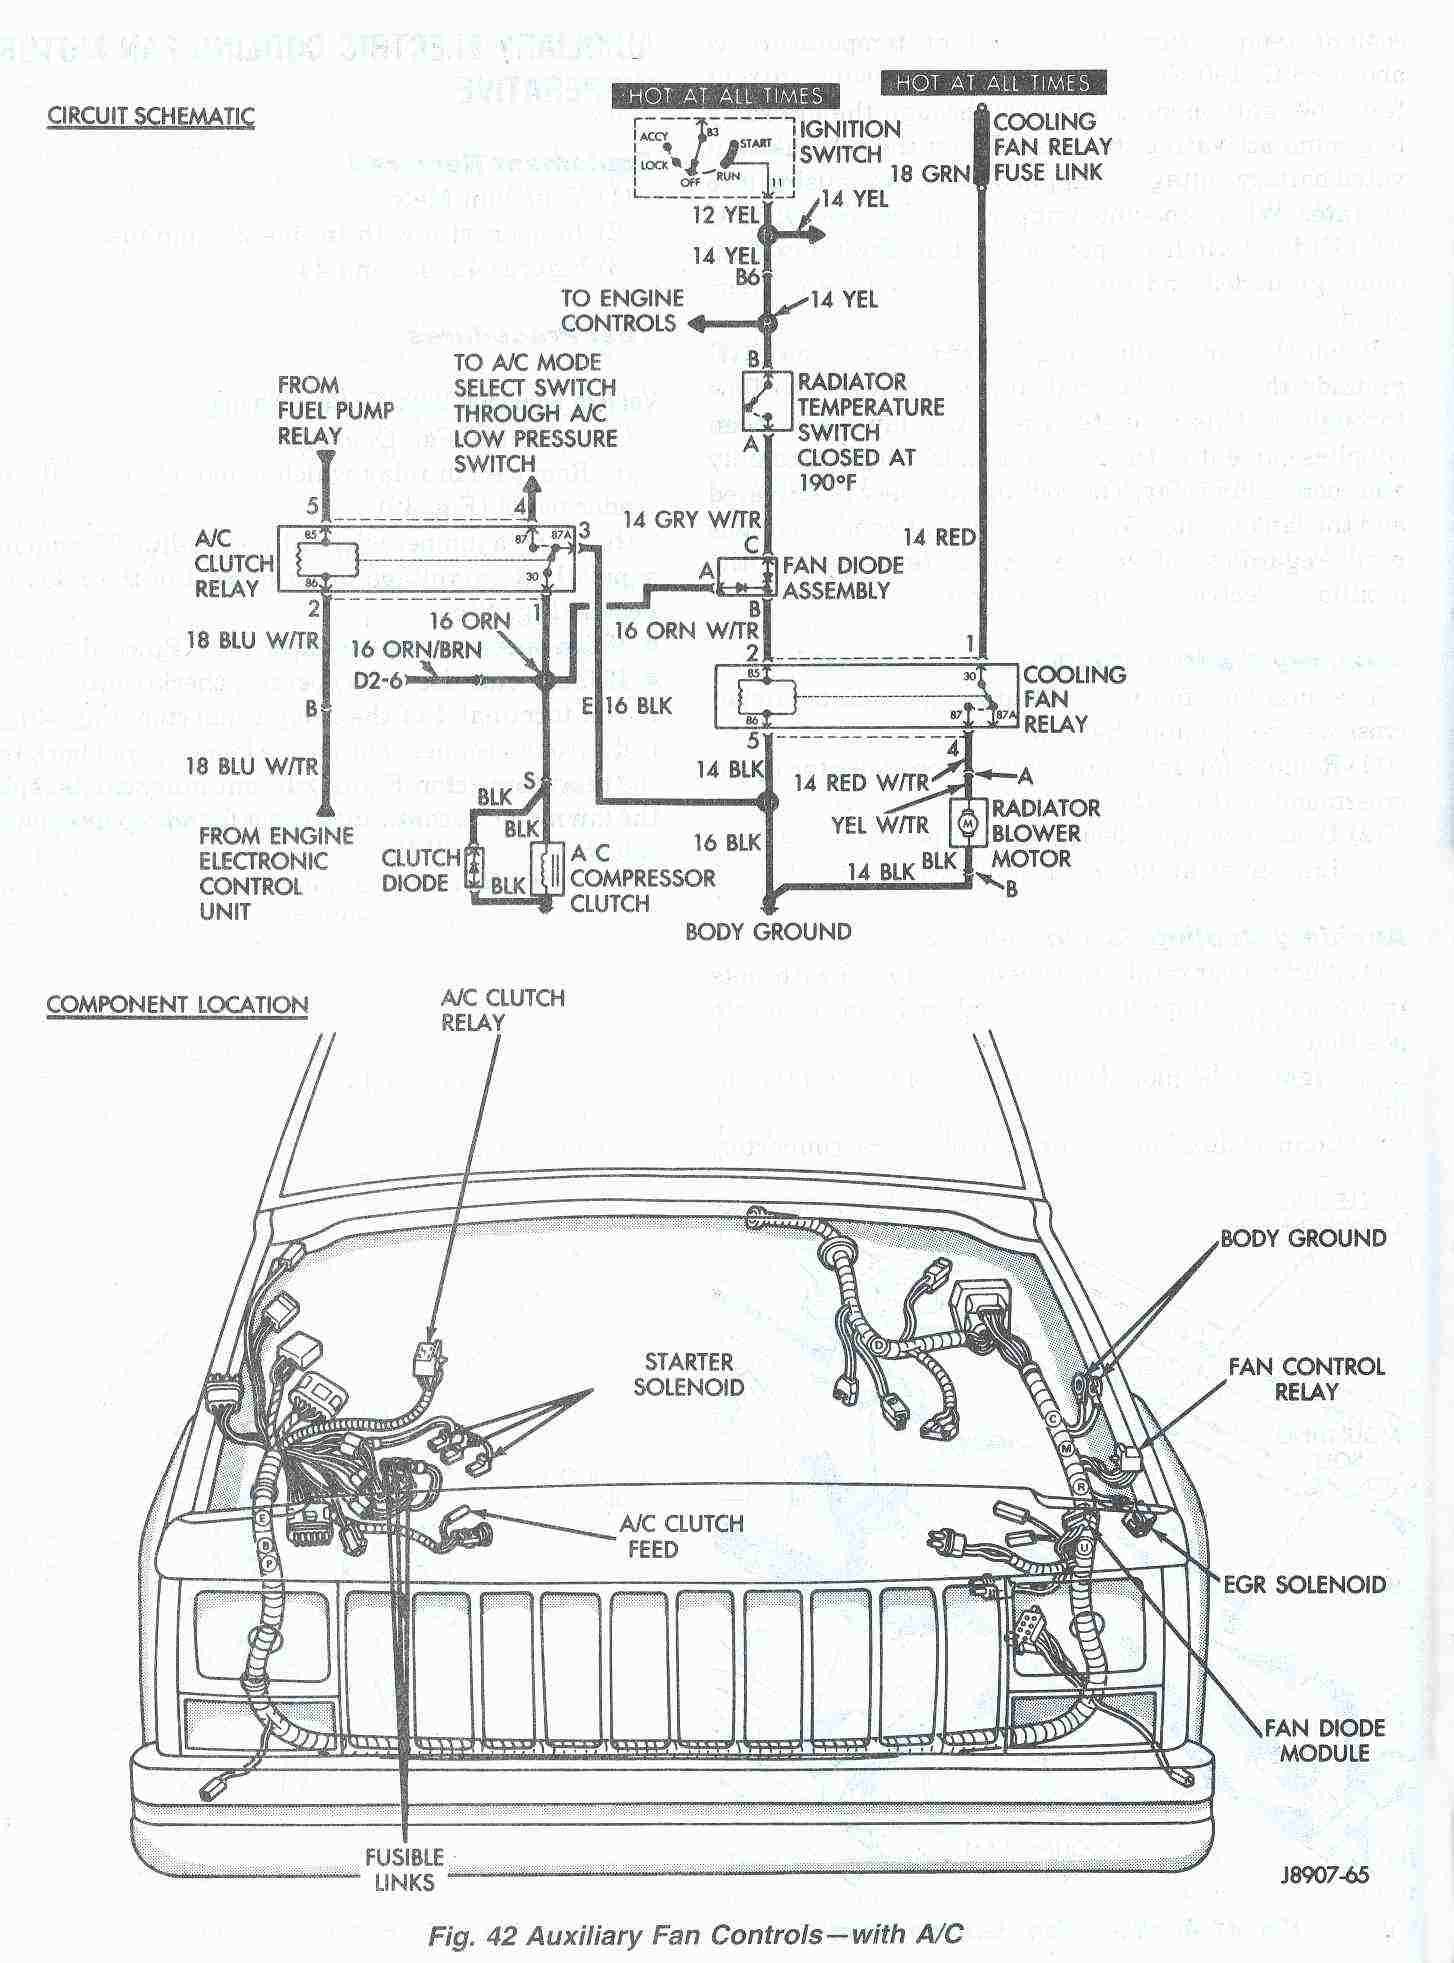 e8c83109bad6c41d377df8c1cb7a8dc4 at the asd relay if vole is not b16 check fuse 20 30 a good there 98 jeep cherokee wiring diagram at soozxer.org